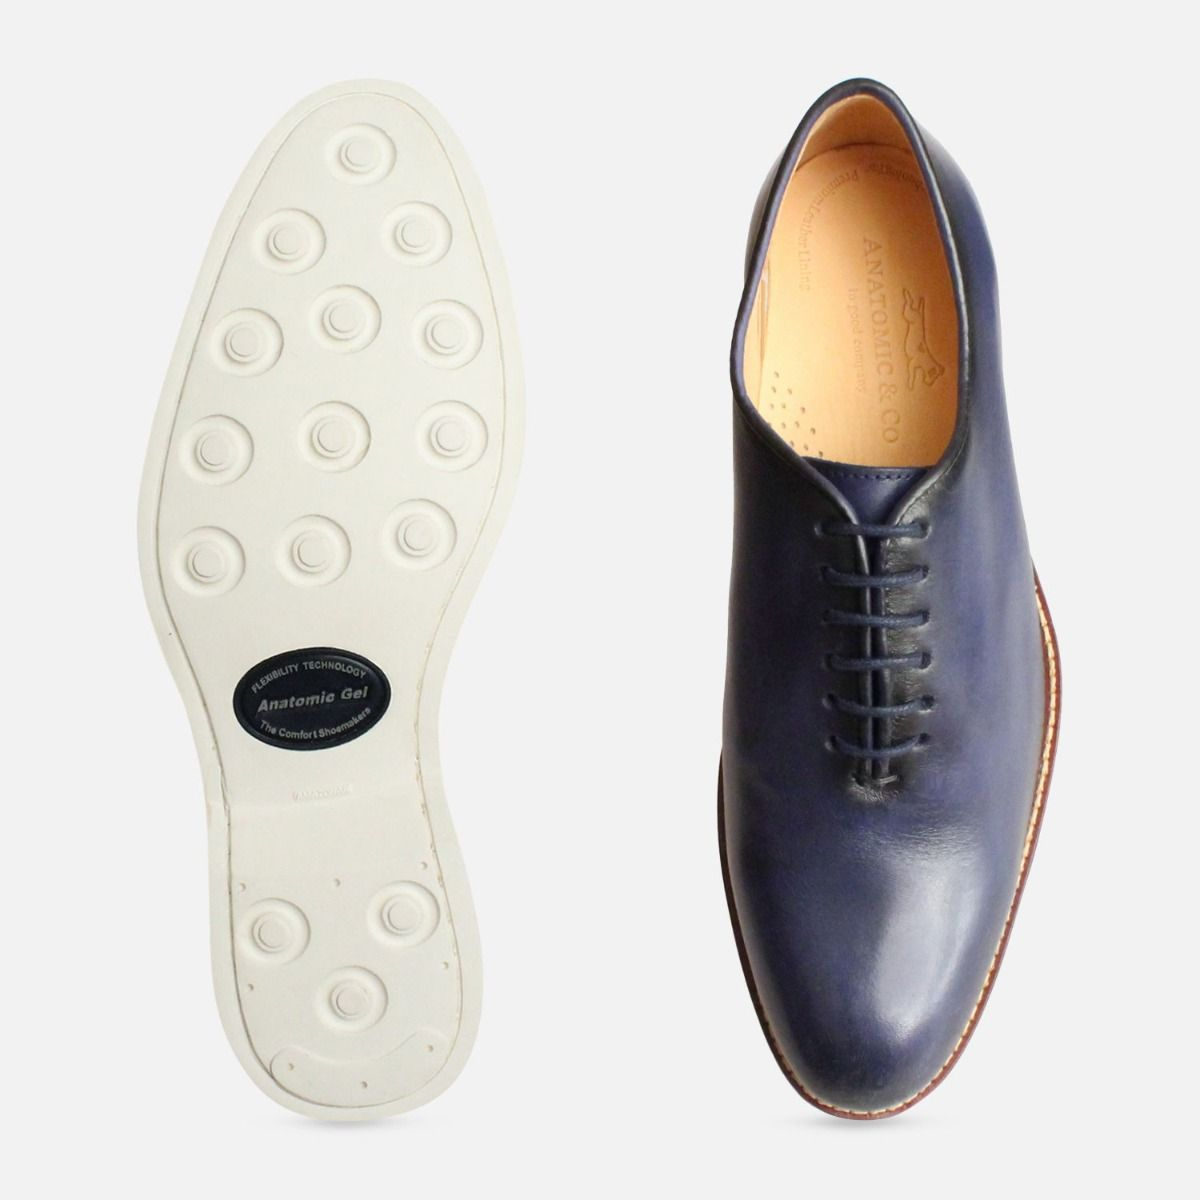 Navy Blue Wholecut Oxford Shoes by Anatomic & Co